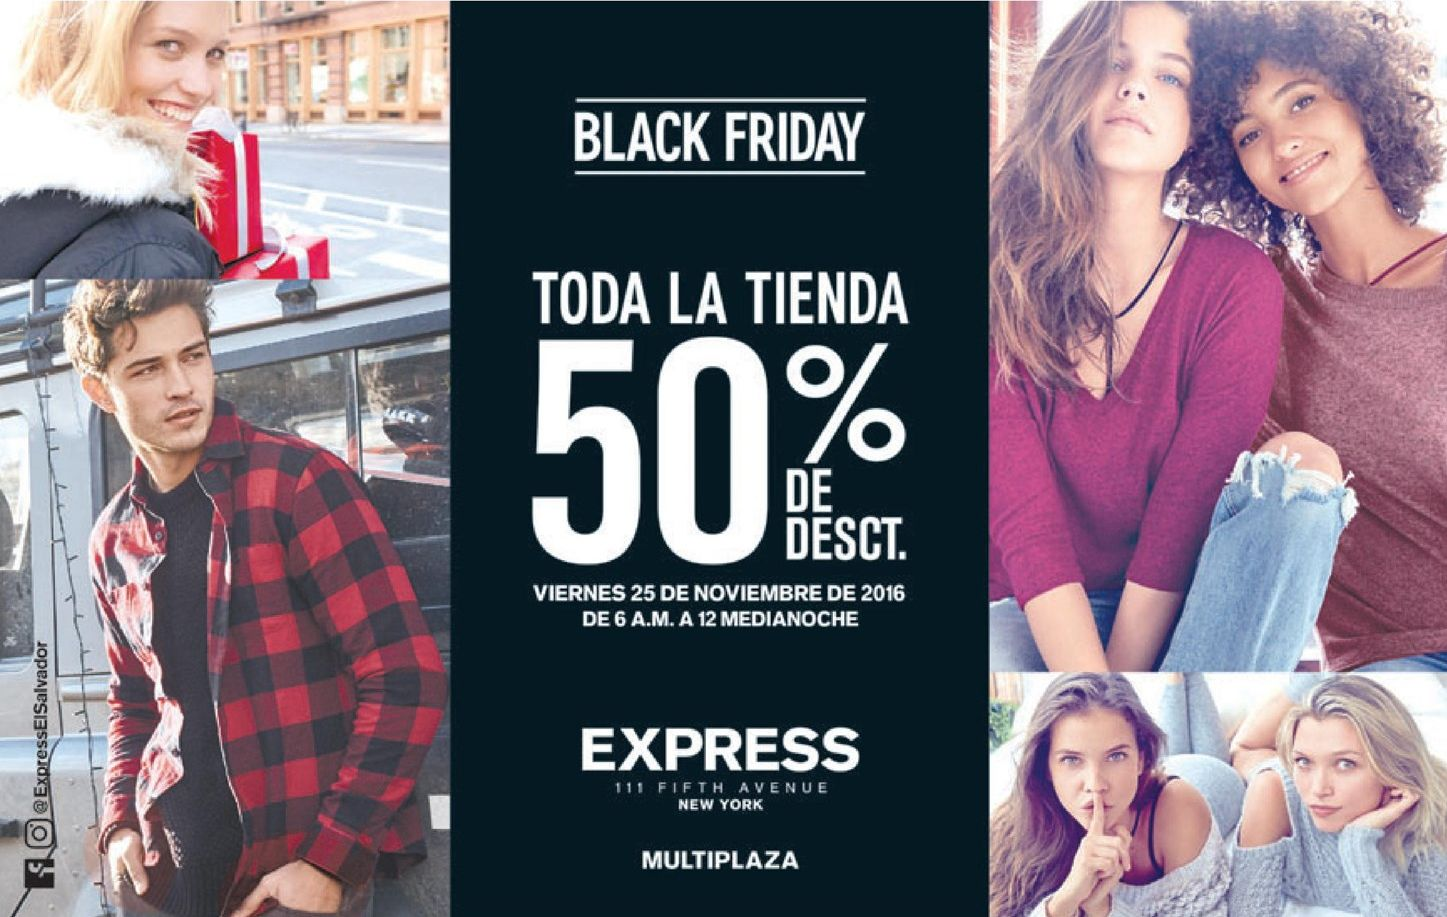 multiplaza-express-avenue-black-friday-deals-2016